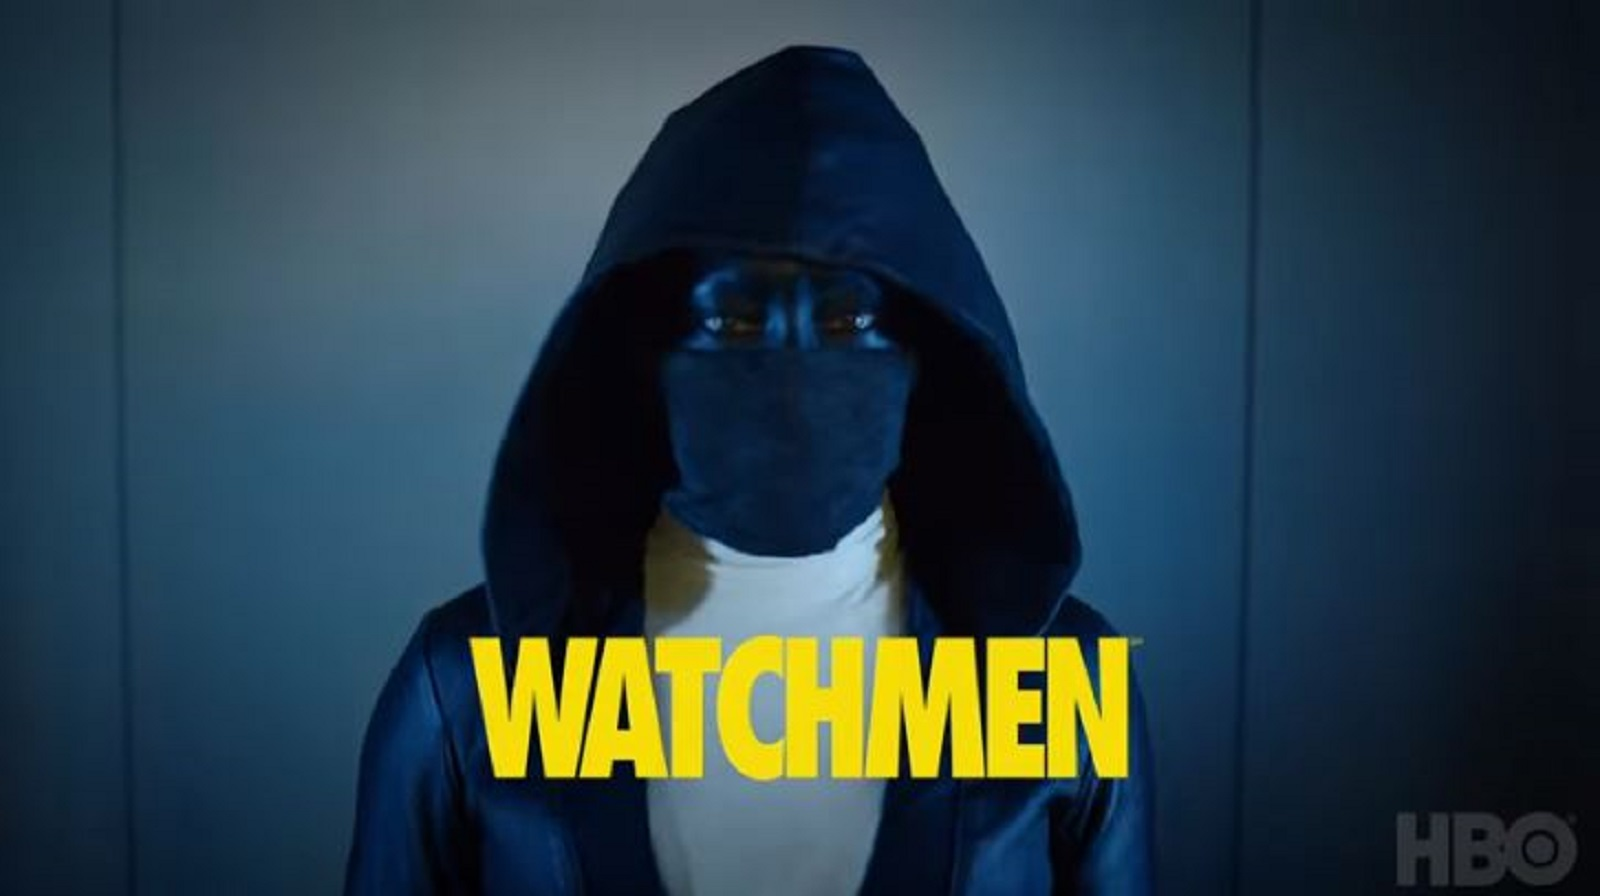 Watchmen Season 2 Trailer and Release Date